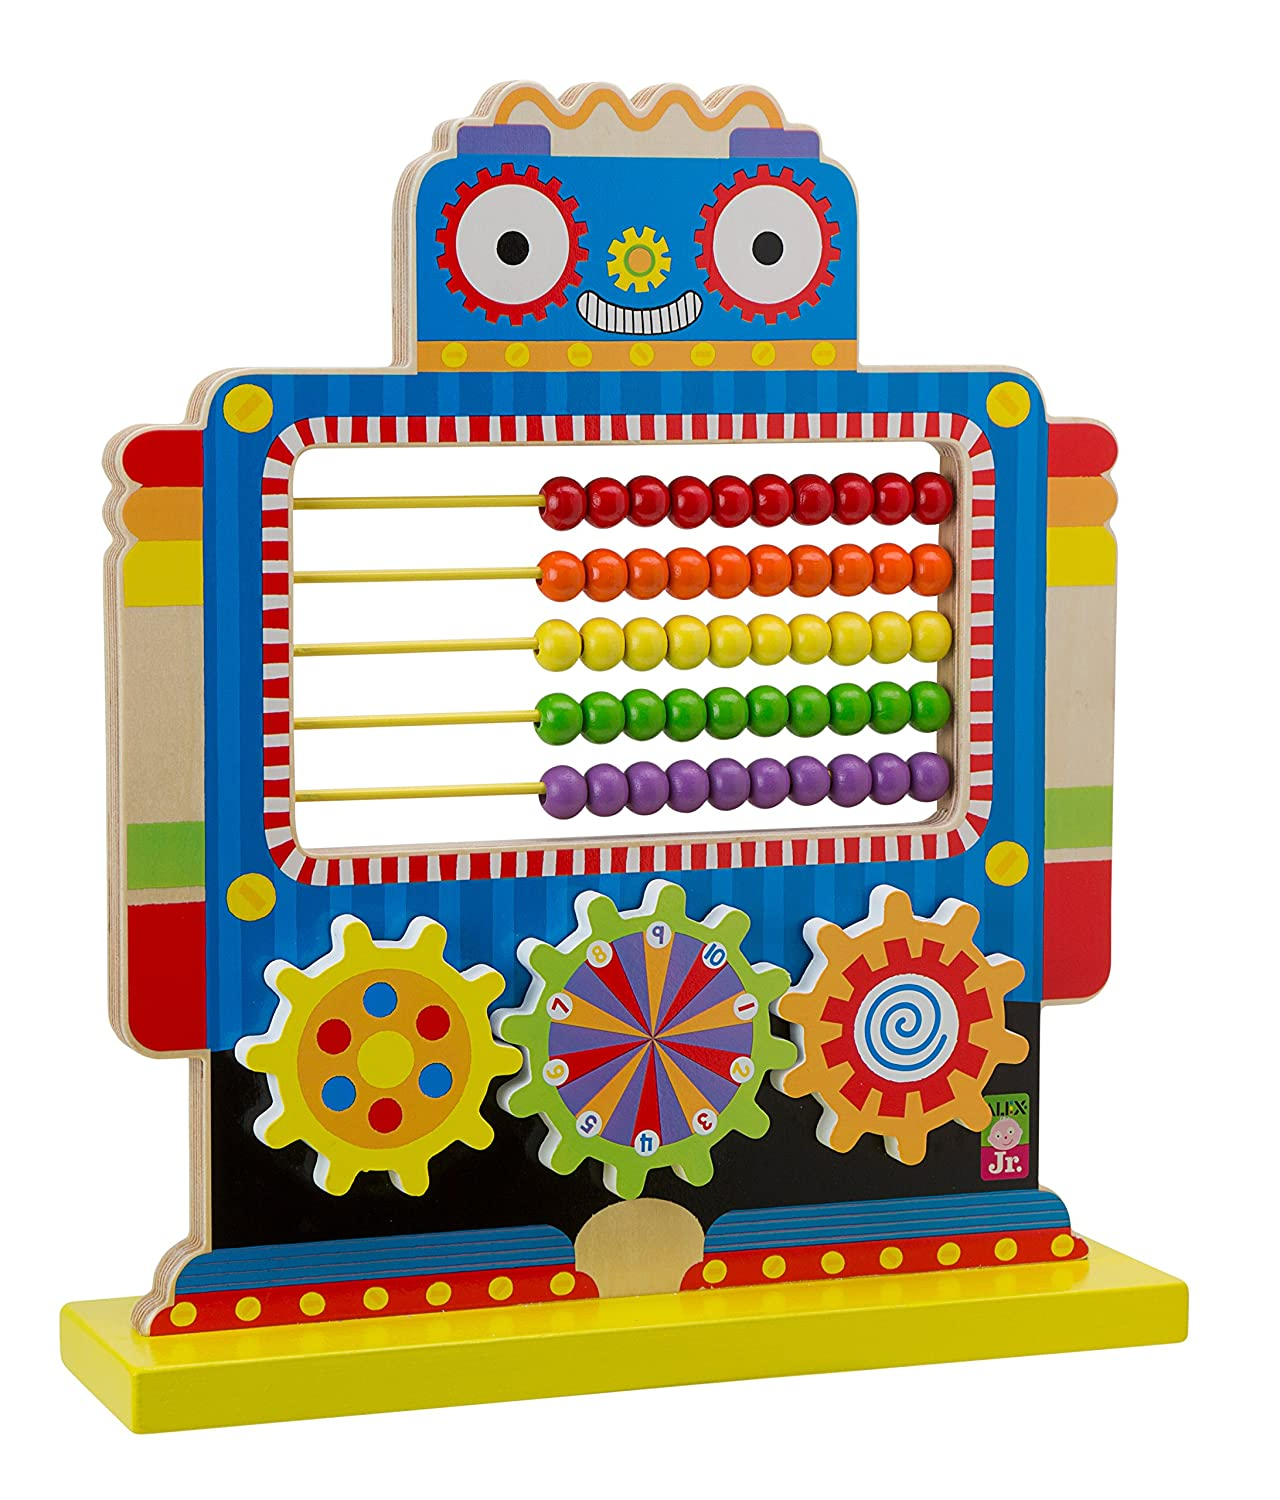 Alex Toys Junior Count-n-Spin Abacus Robot 1999R